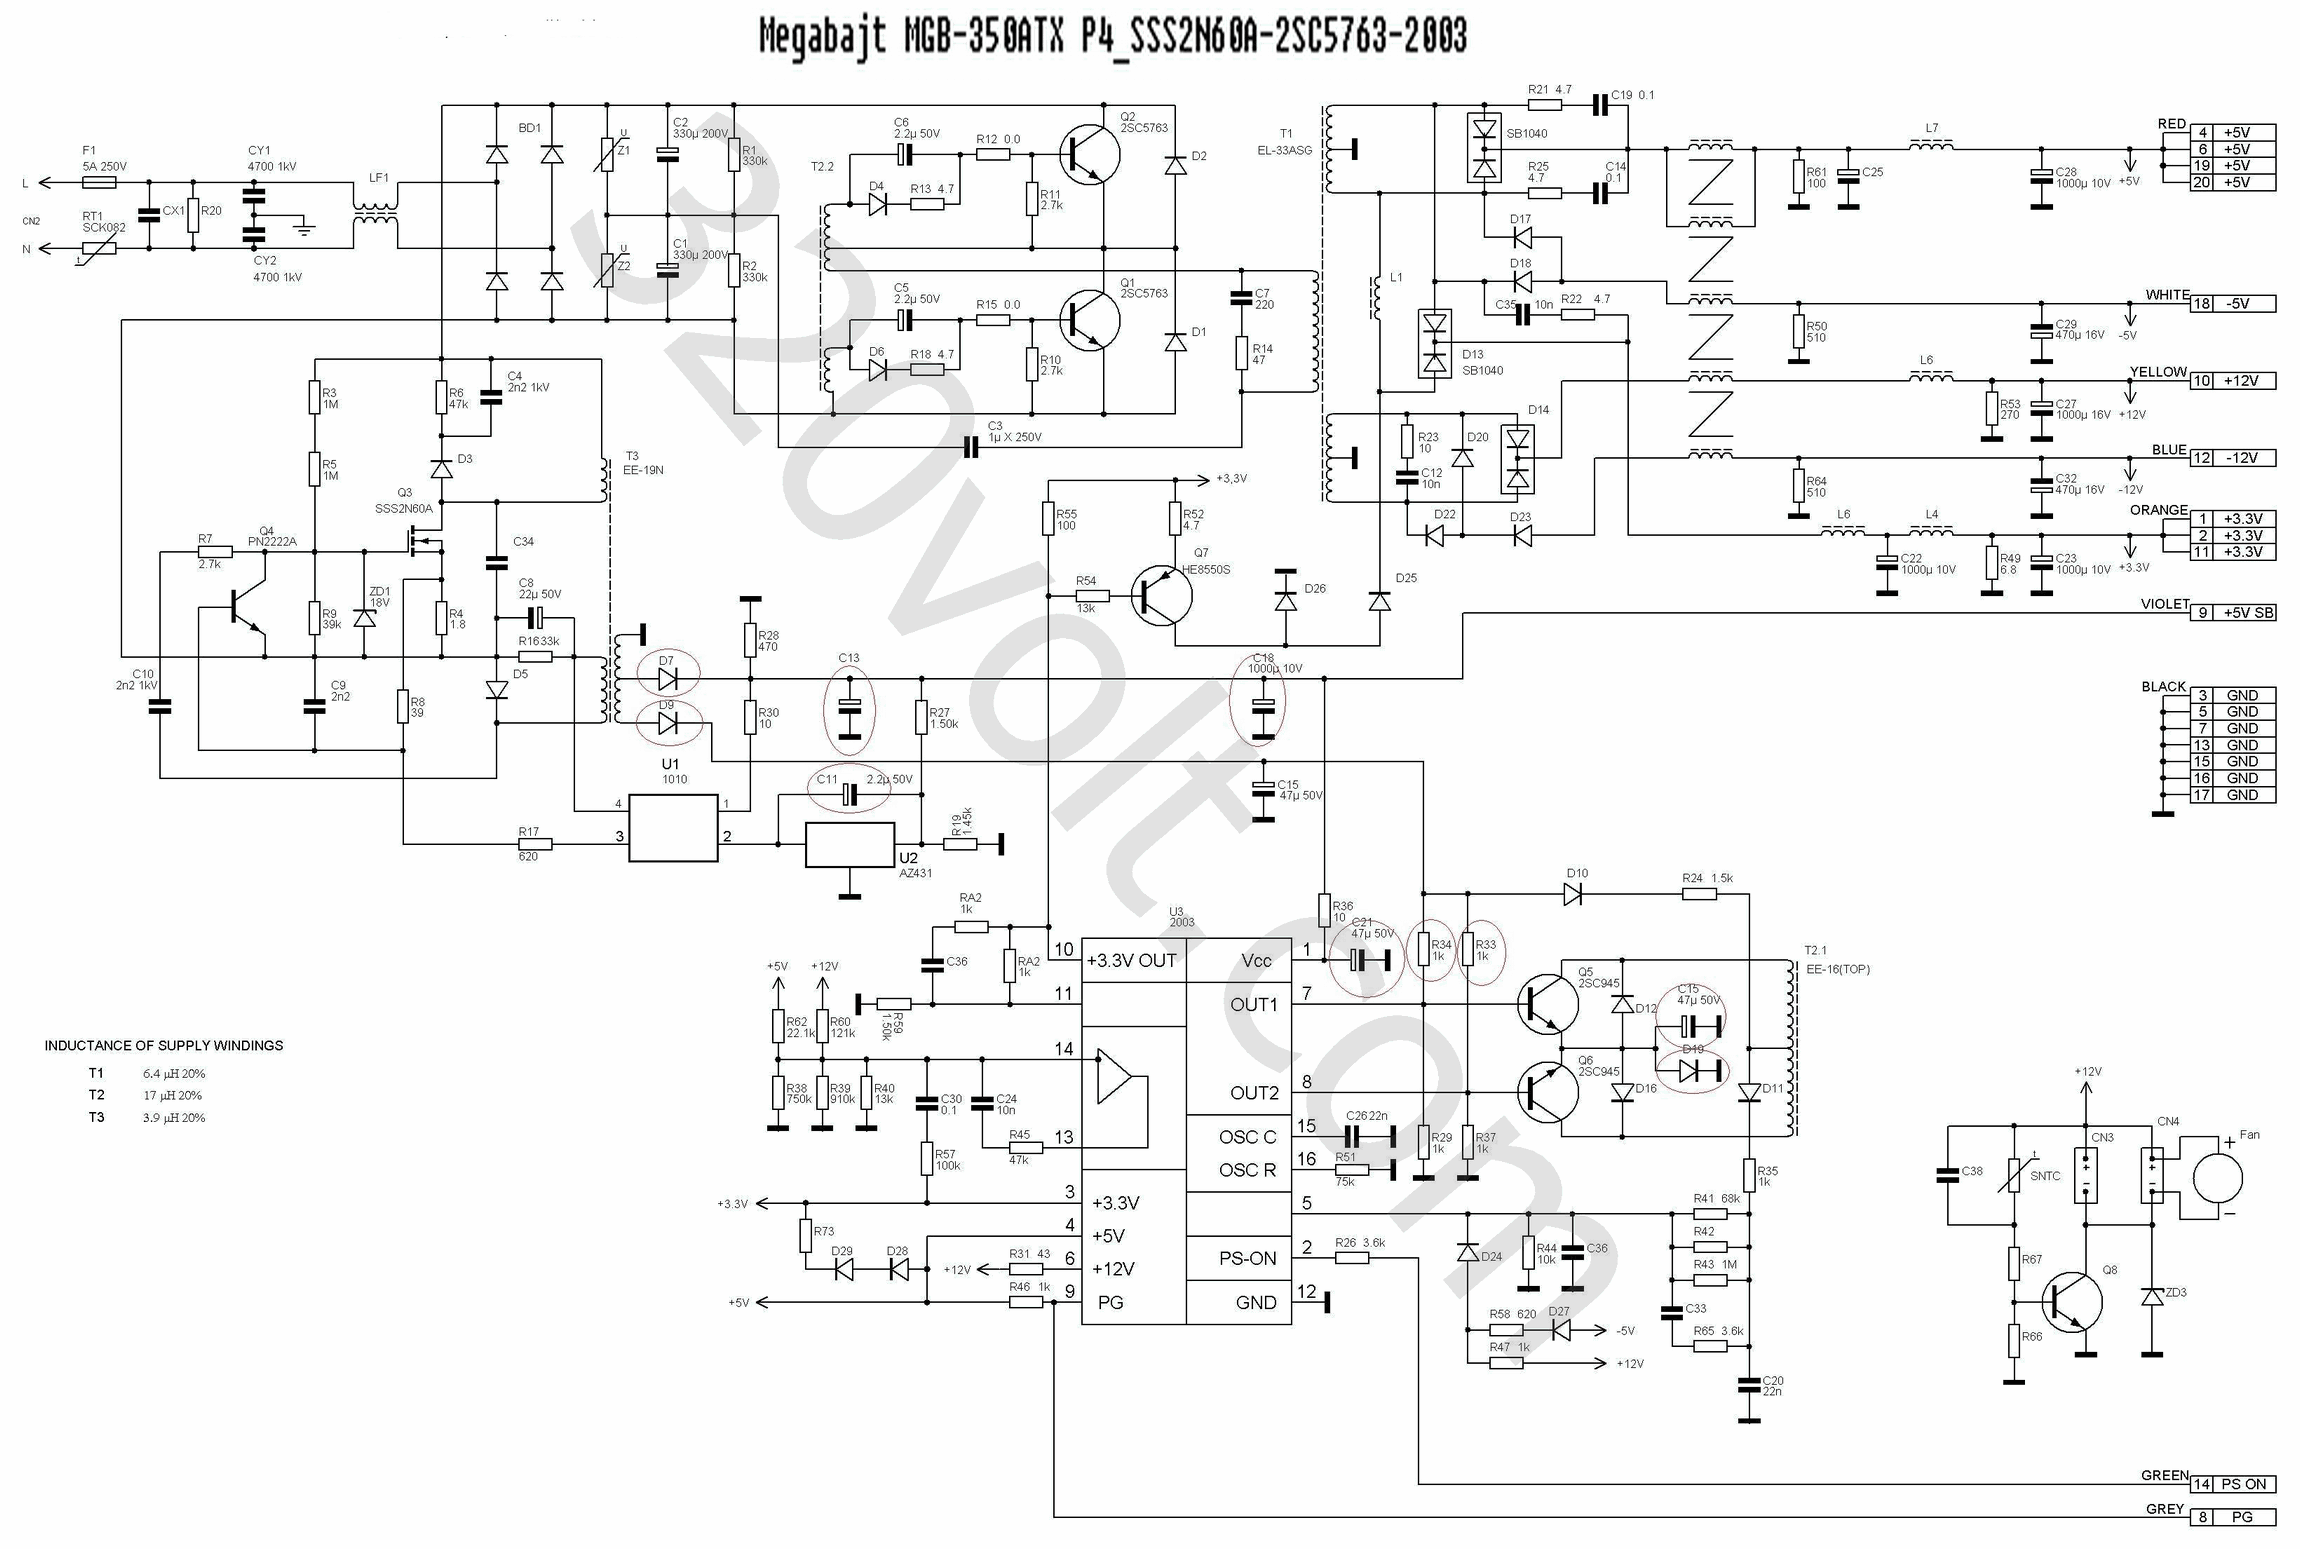 atx smps atx smps circuit atx smps schematic ml48241